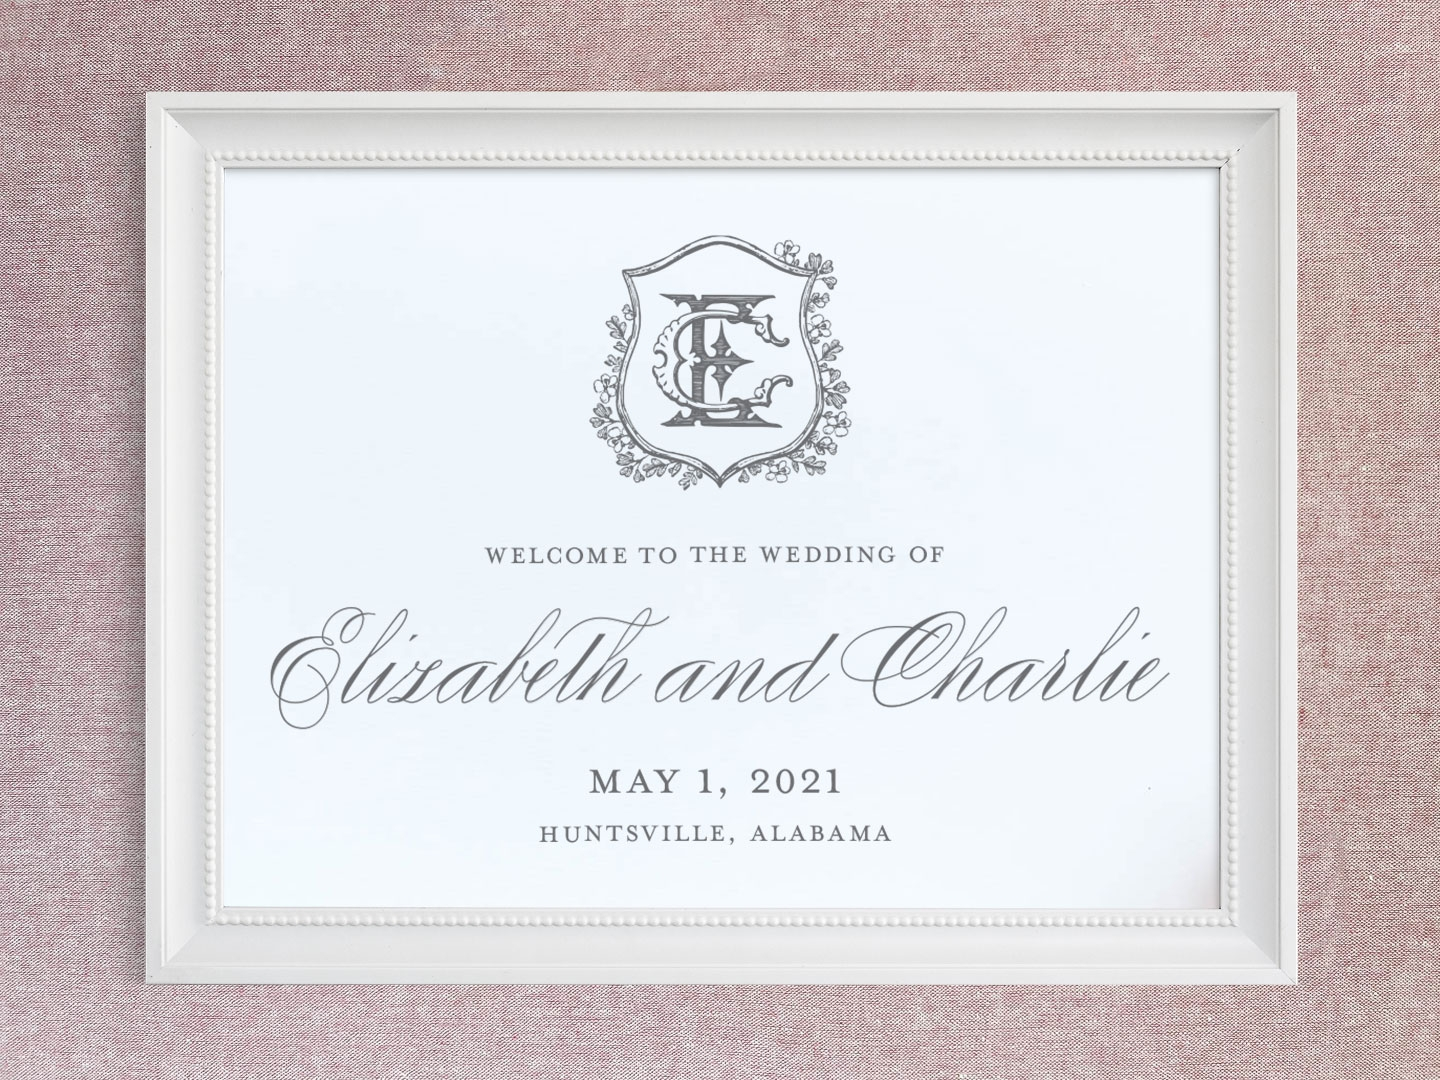 Wedding welcome sign with floral crest and vintage monogram.